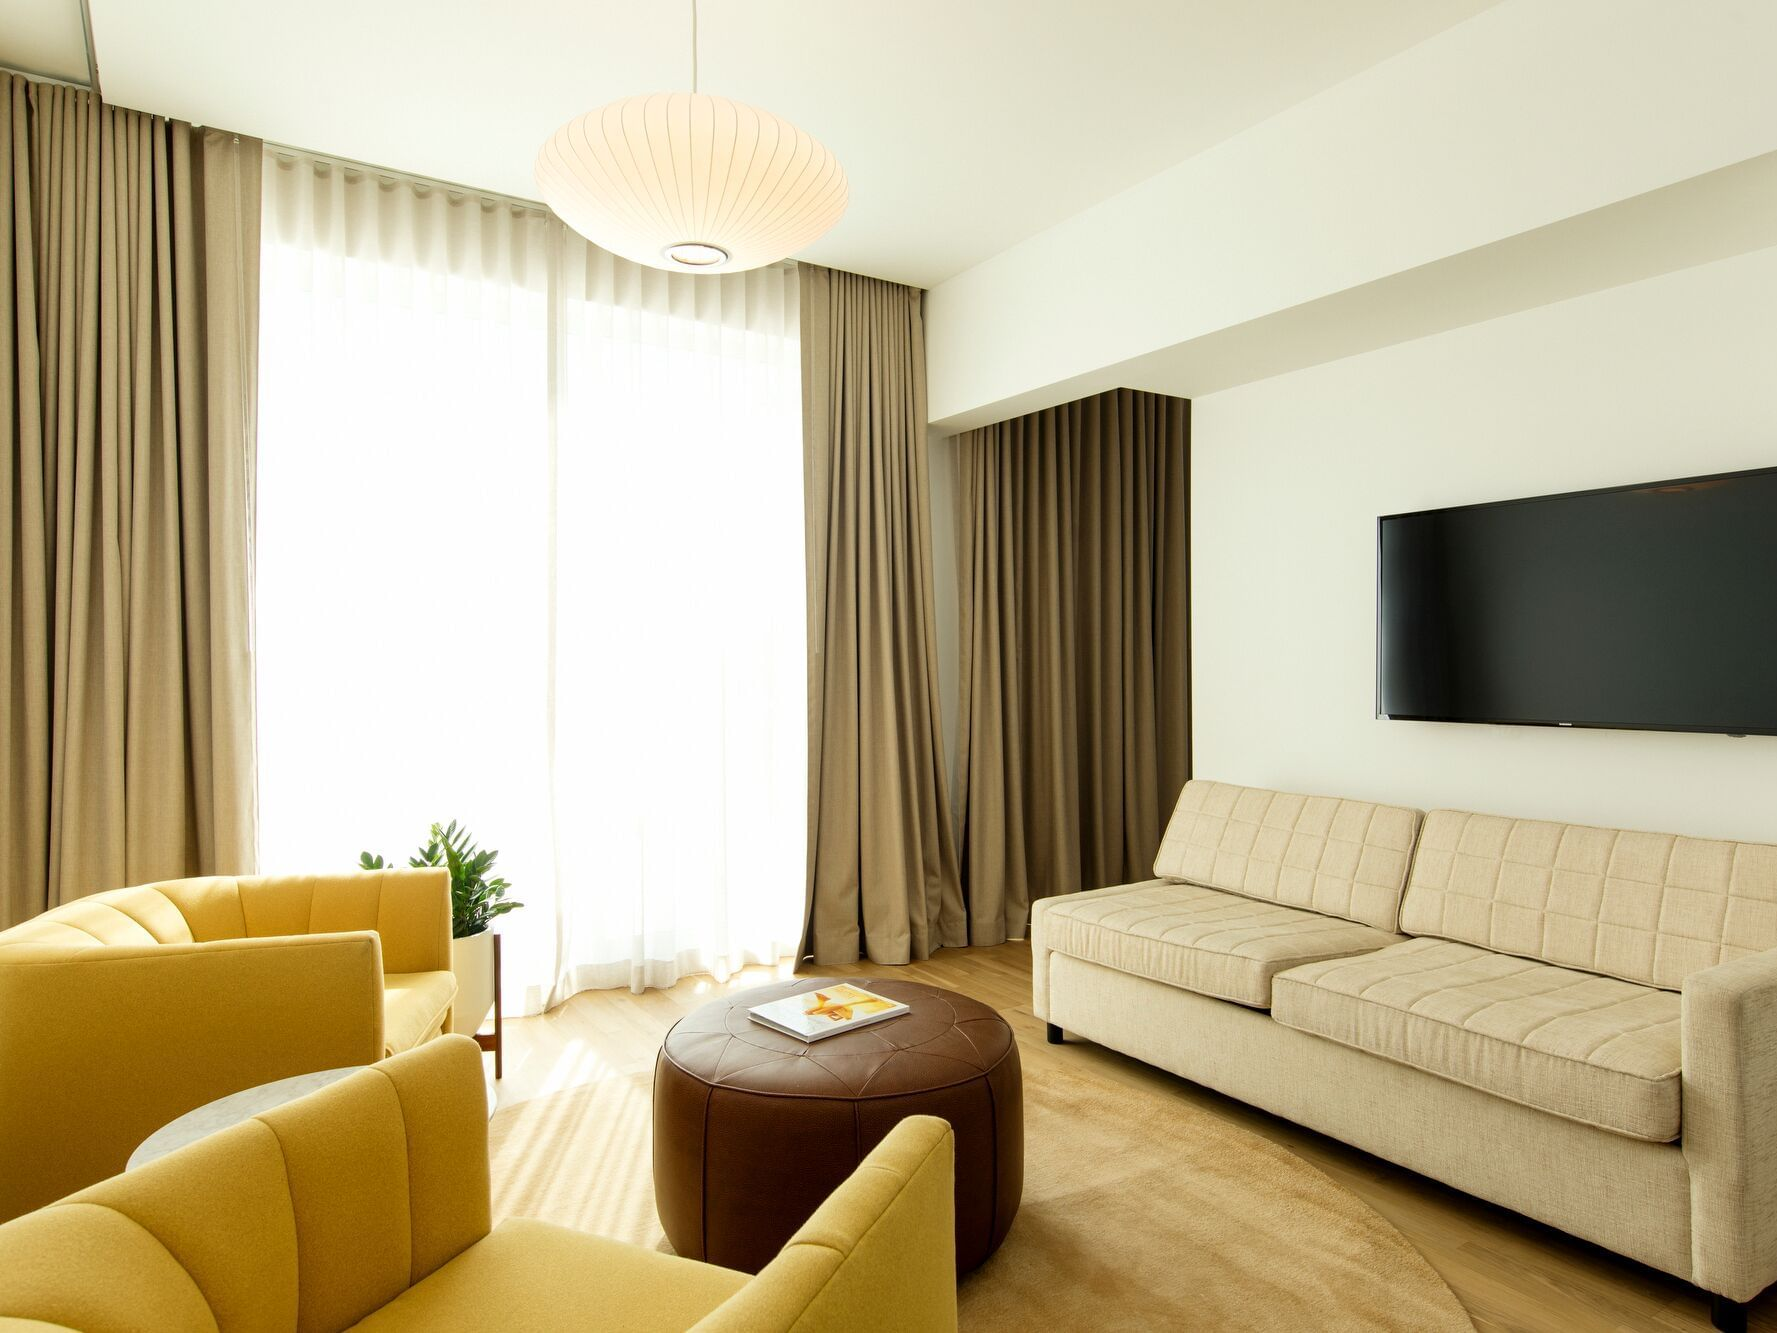 living room area with sofa and chairs